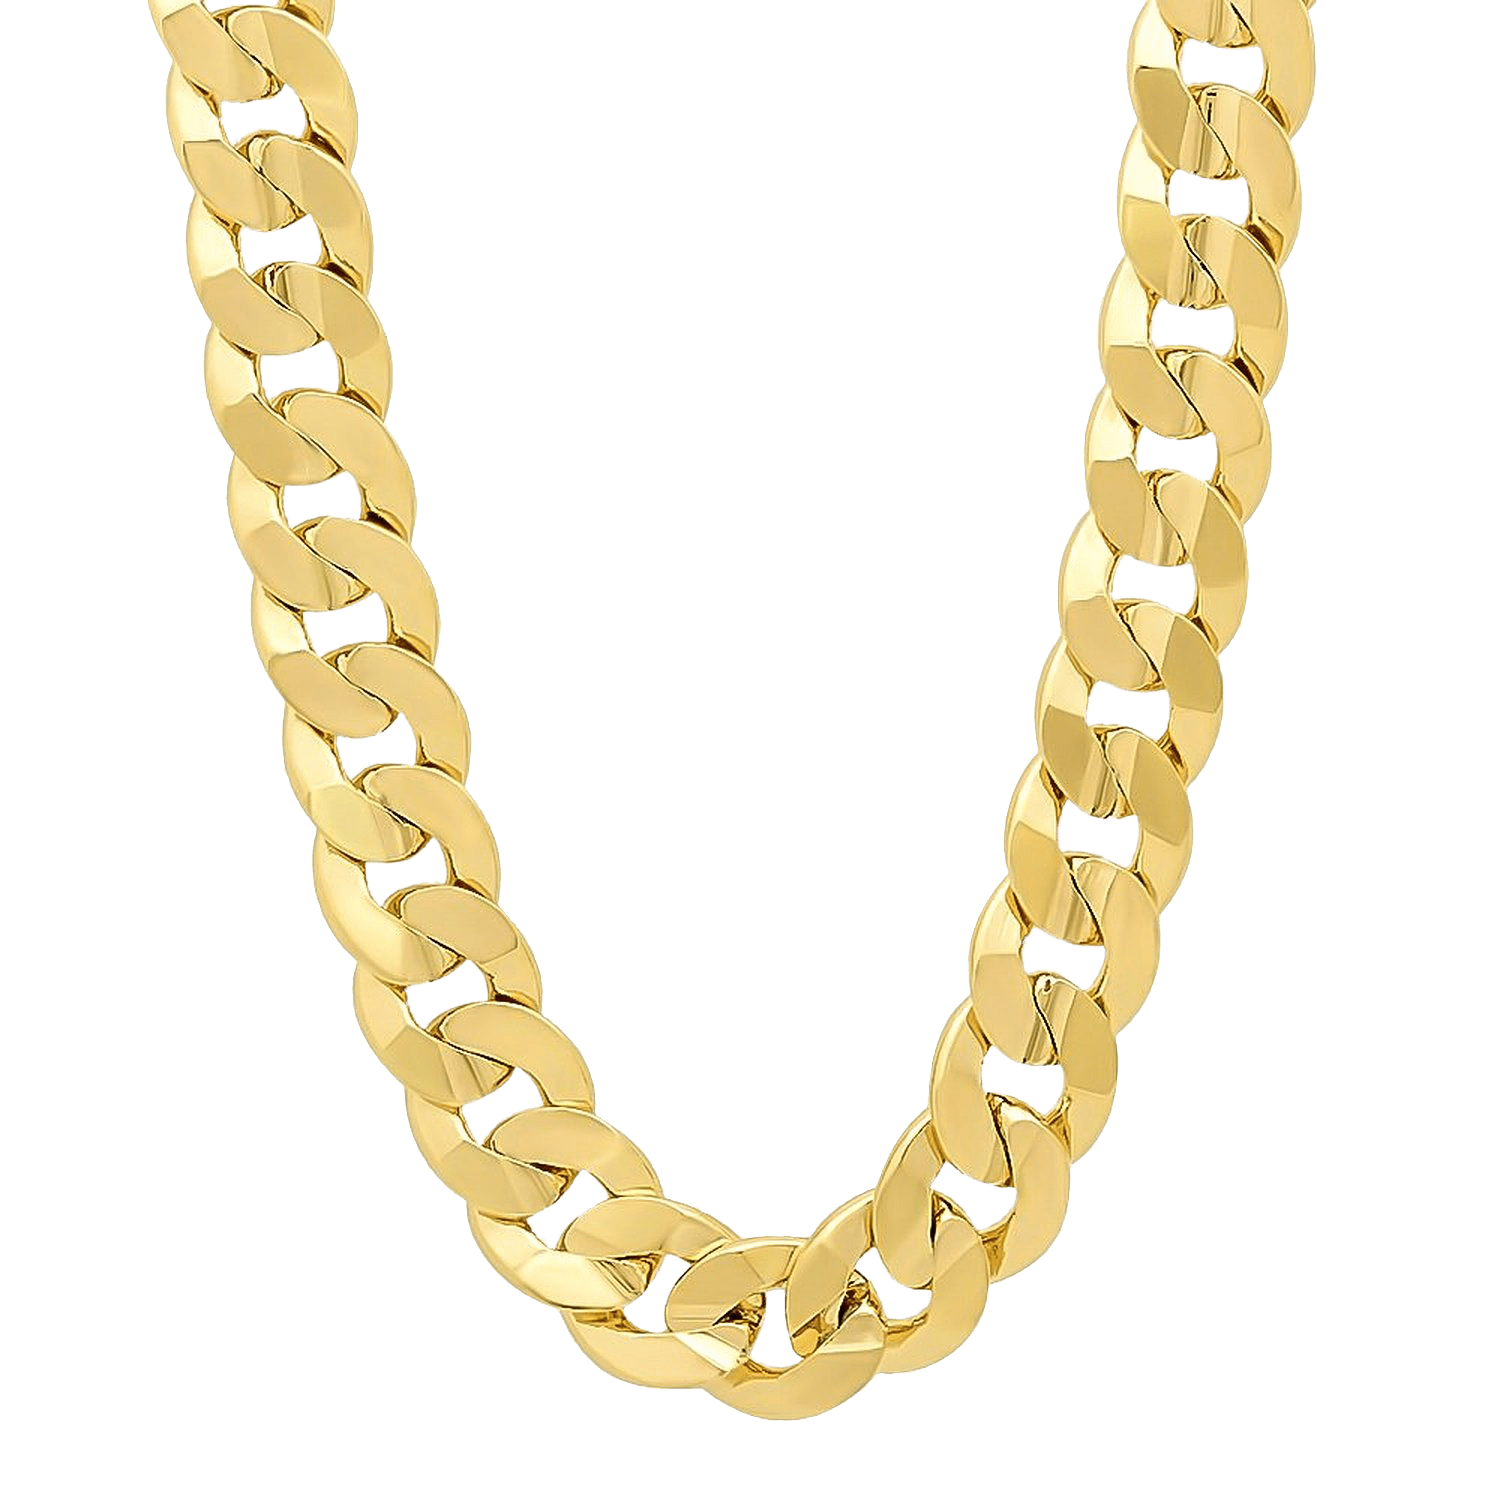 Chain PNG - 25221